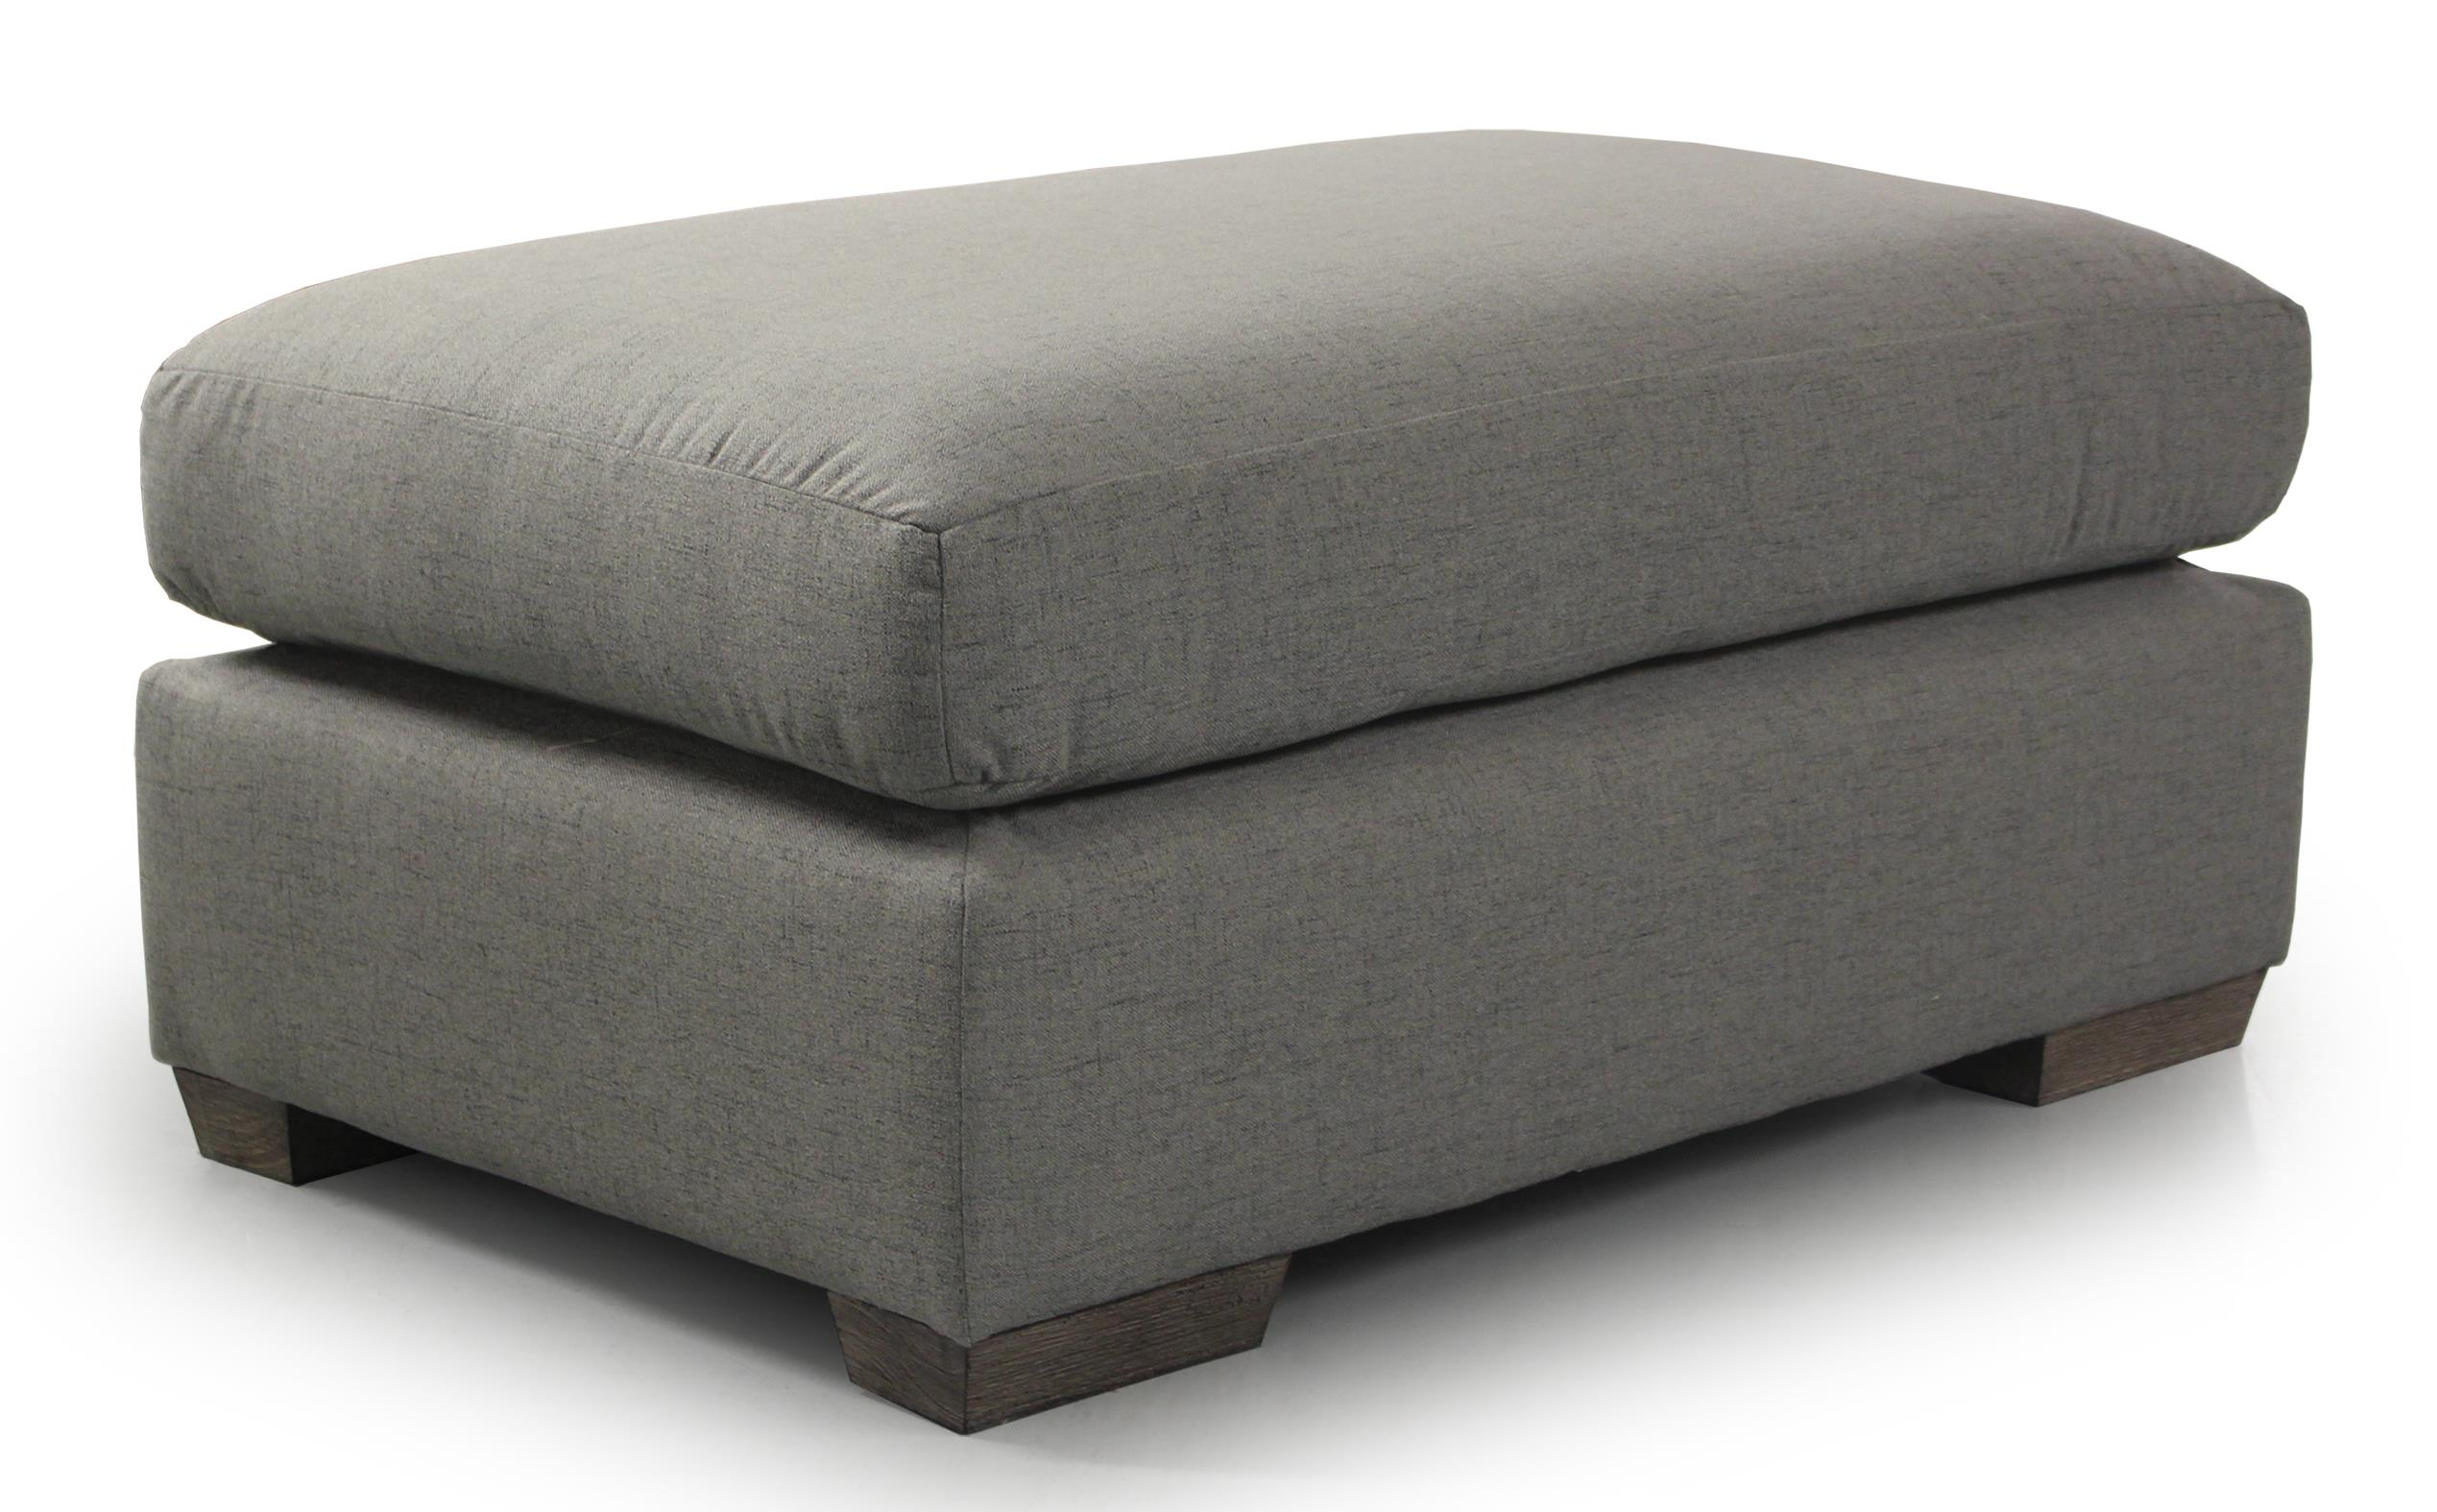 Best Home Furnishings Oliver Ottoman - Item Number: F40-20653